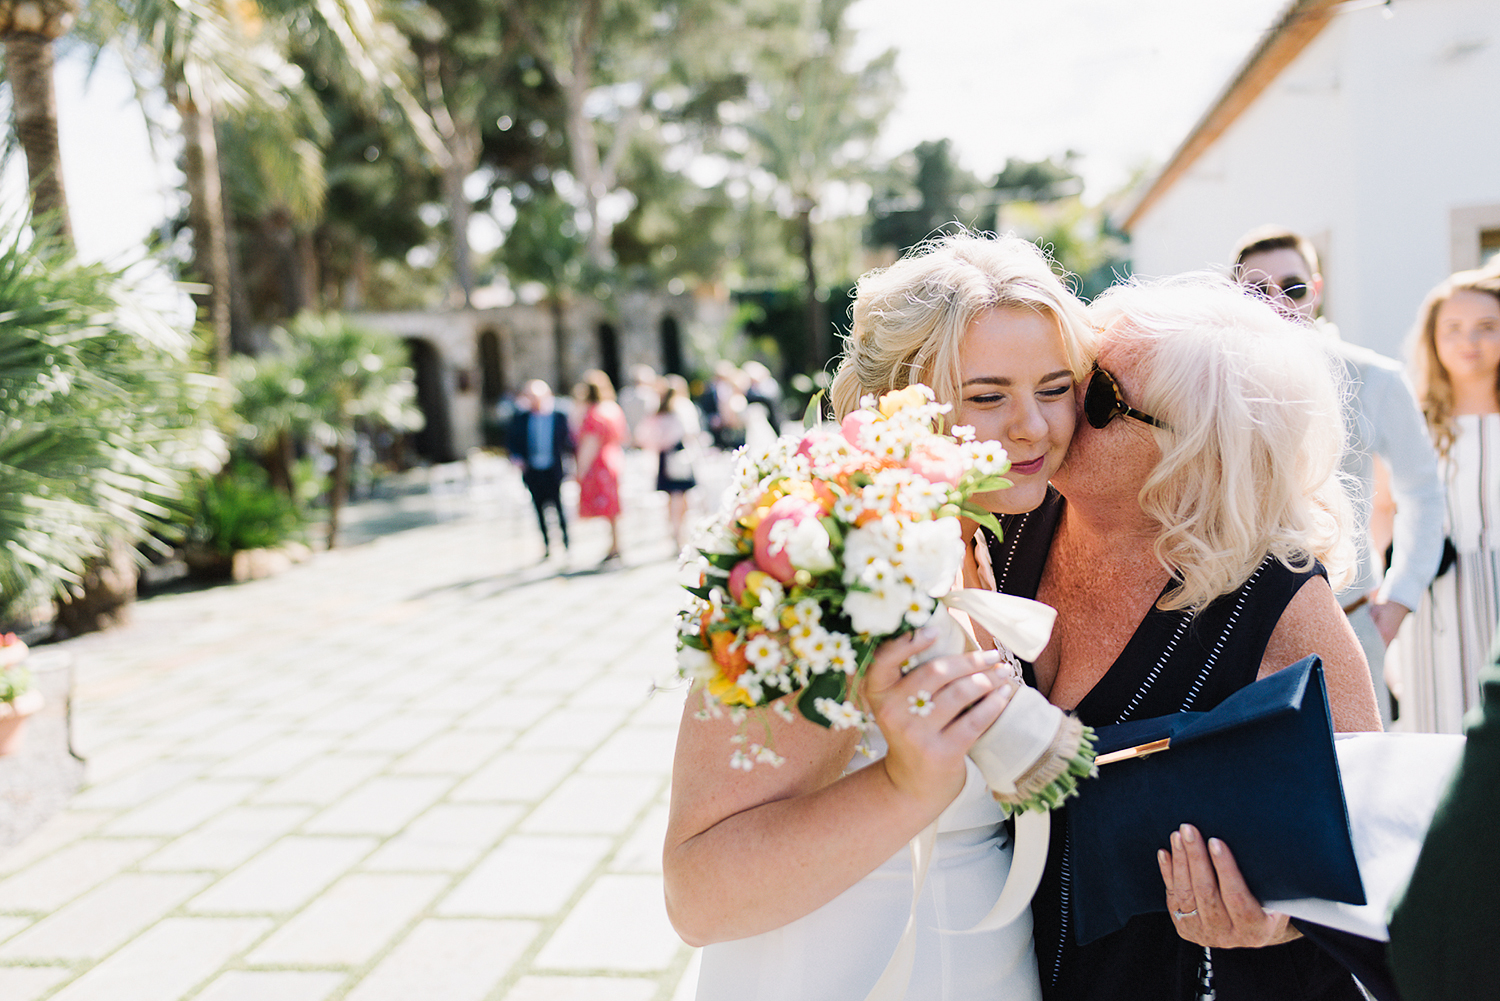 photographer-destination-wedding-photographer-from-toronto-ryanne-hollies-photography-documentary-editorial-style-toronto-wedding-photographer-junebug-weddings-candid-genuine-moments-congratulations-bride-and-aunt-emotional.jpg